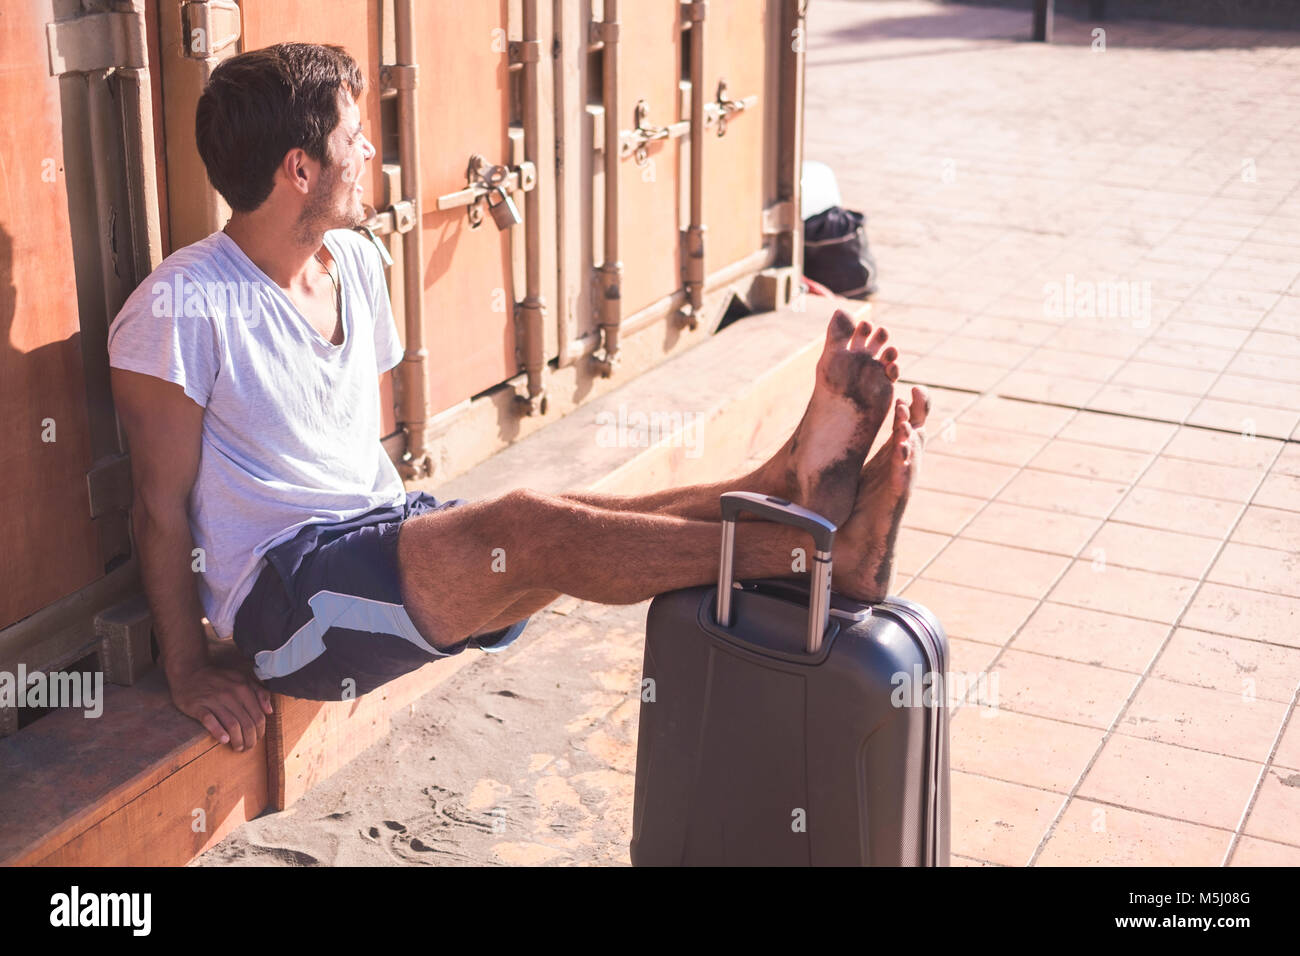 Barefeet man with rolling suitcase sitting in front of cubicle - Stock Image